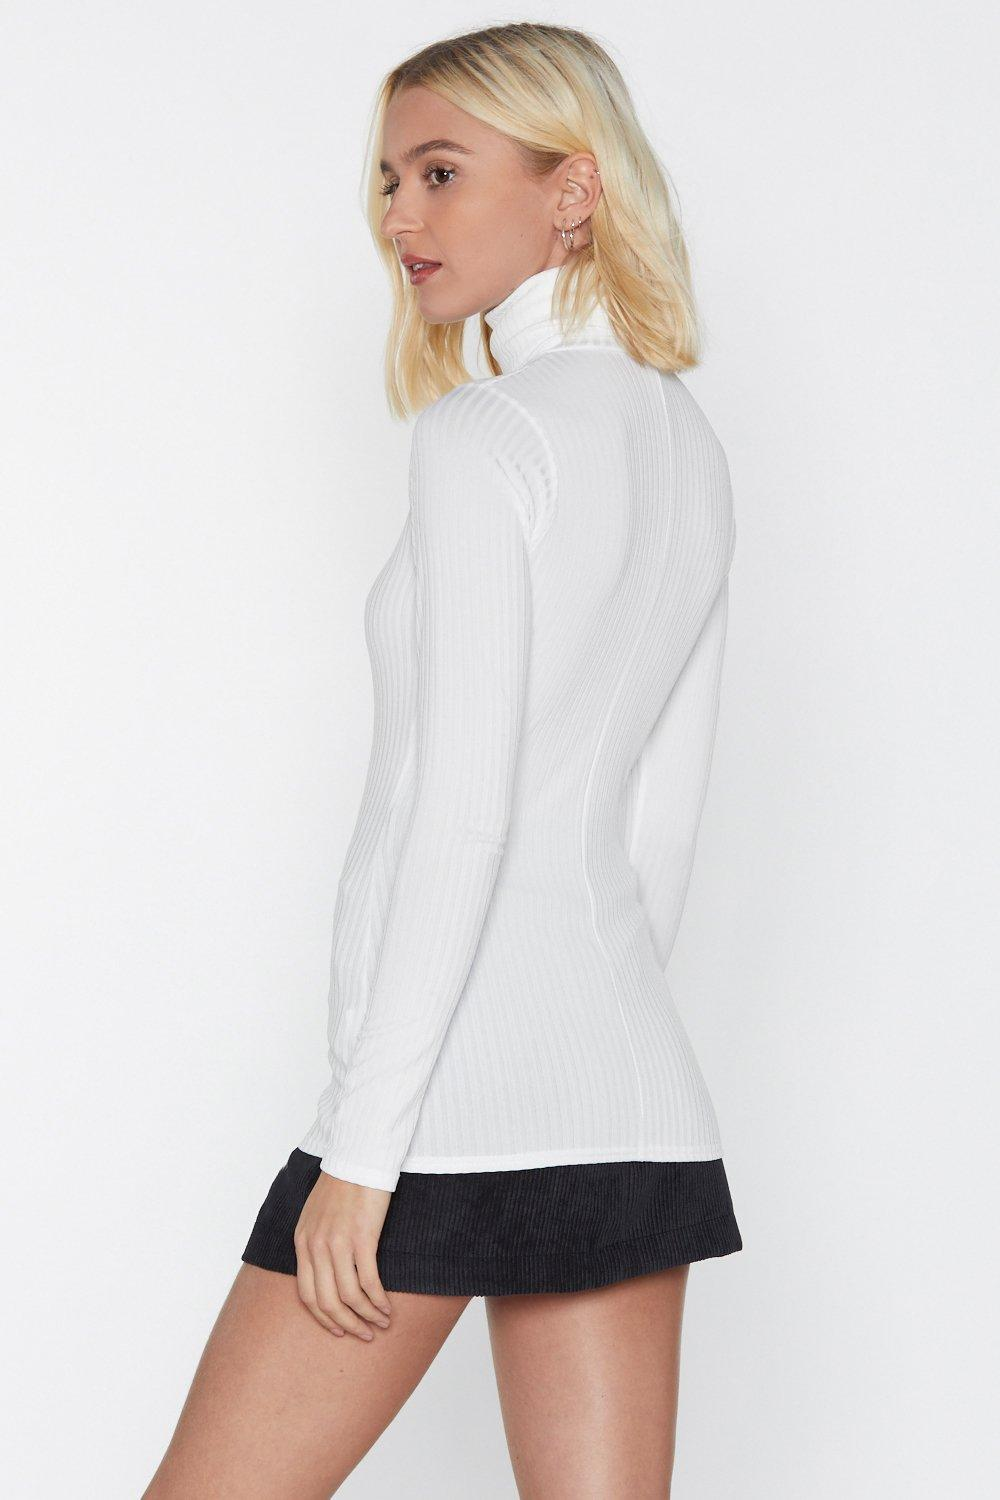 Got No Chill Turtleneck Sweater | Shop Clothes at Nasty Gal!